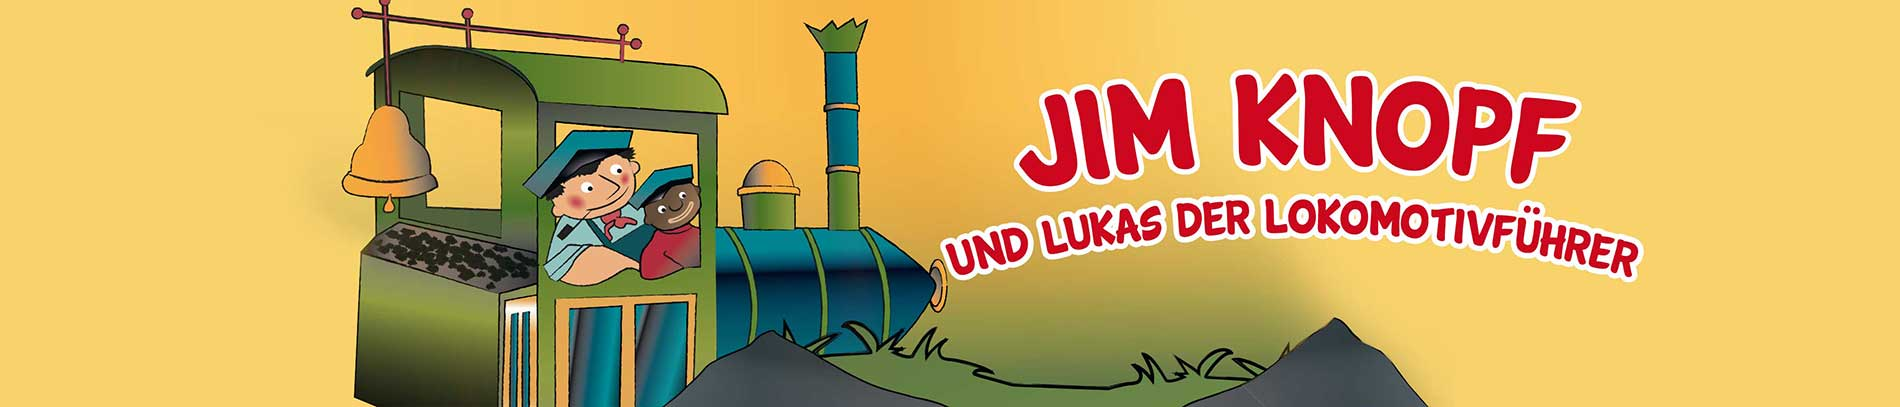 Theaterplakat Jim Knopf